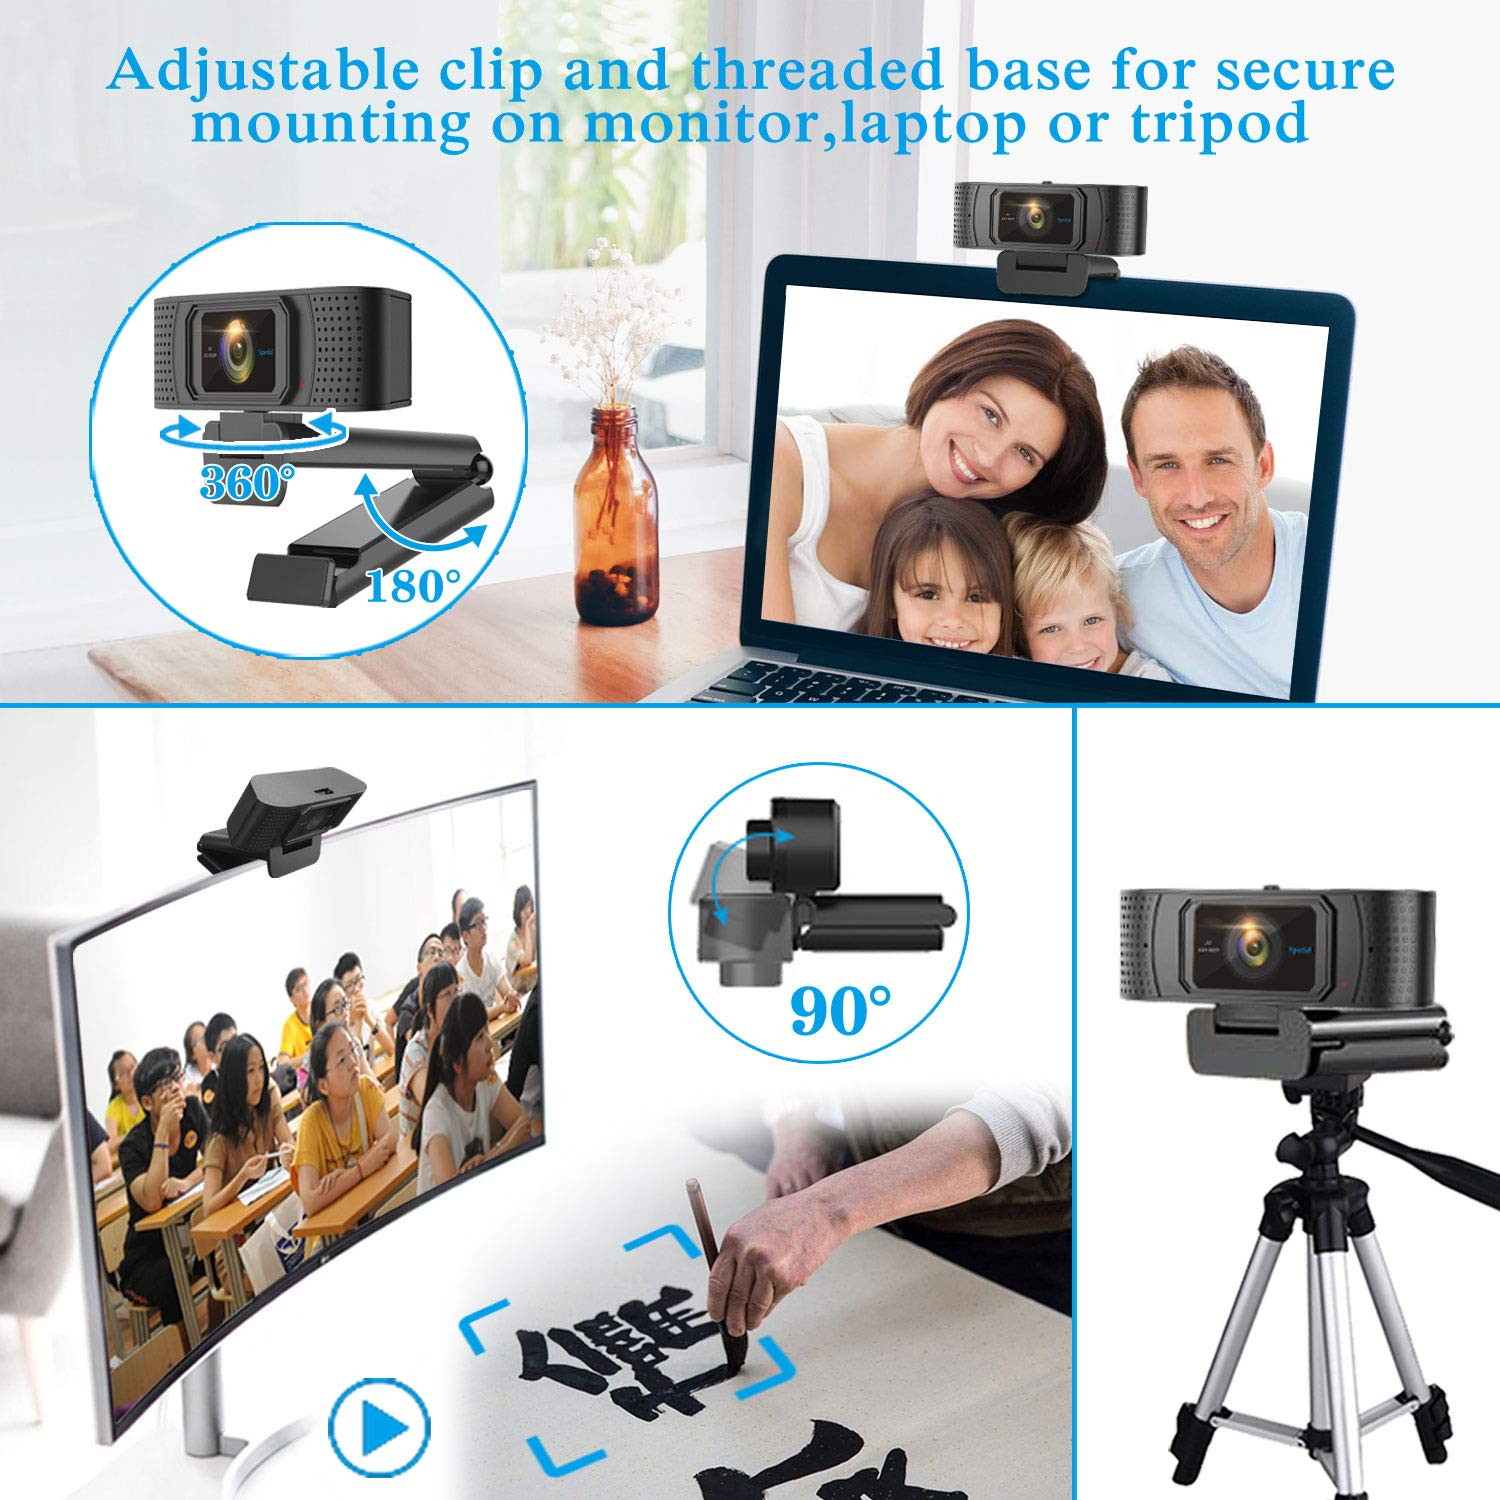 Webcam with Privacy Shutter Autofocus Web Camera Streaming Xbox Skype Camera PC HD Computer Camera 1080P Pro Webcam with Dual Microphones OBS YouTube Twitch Compatible